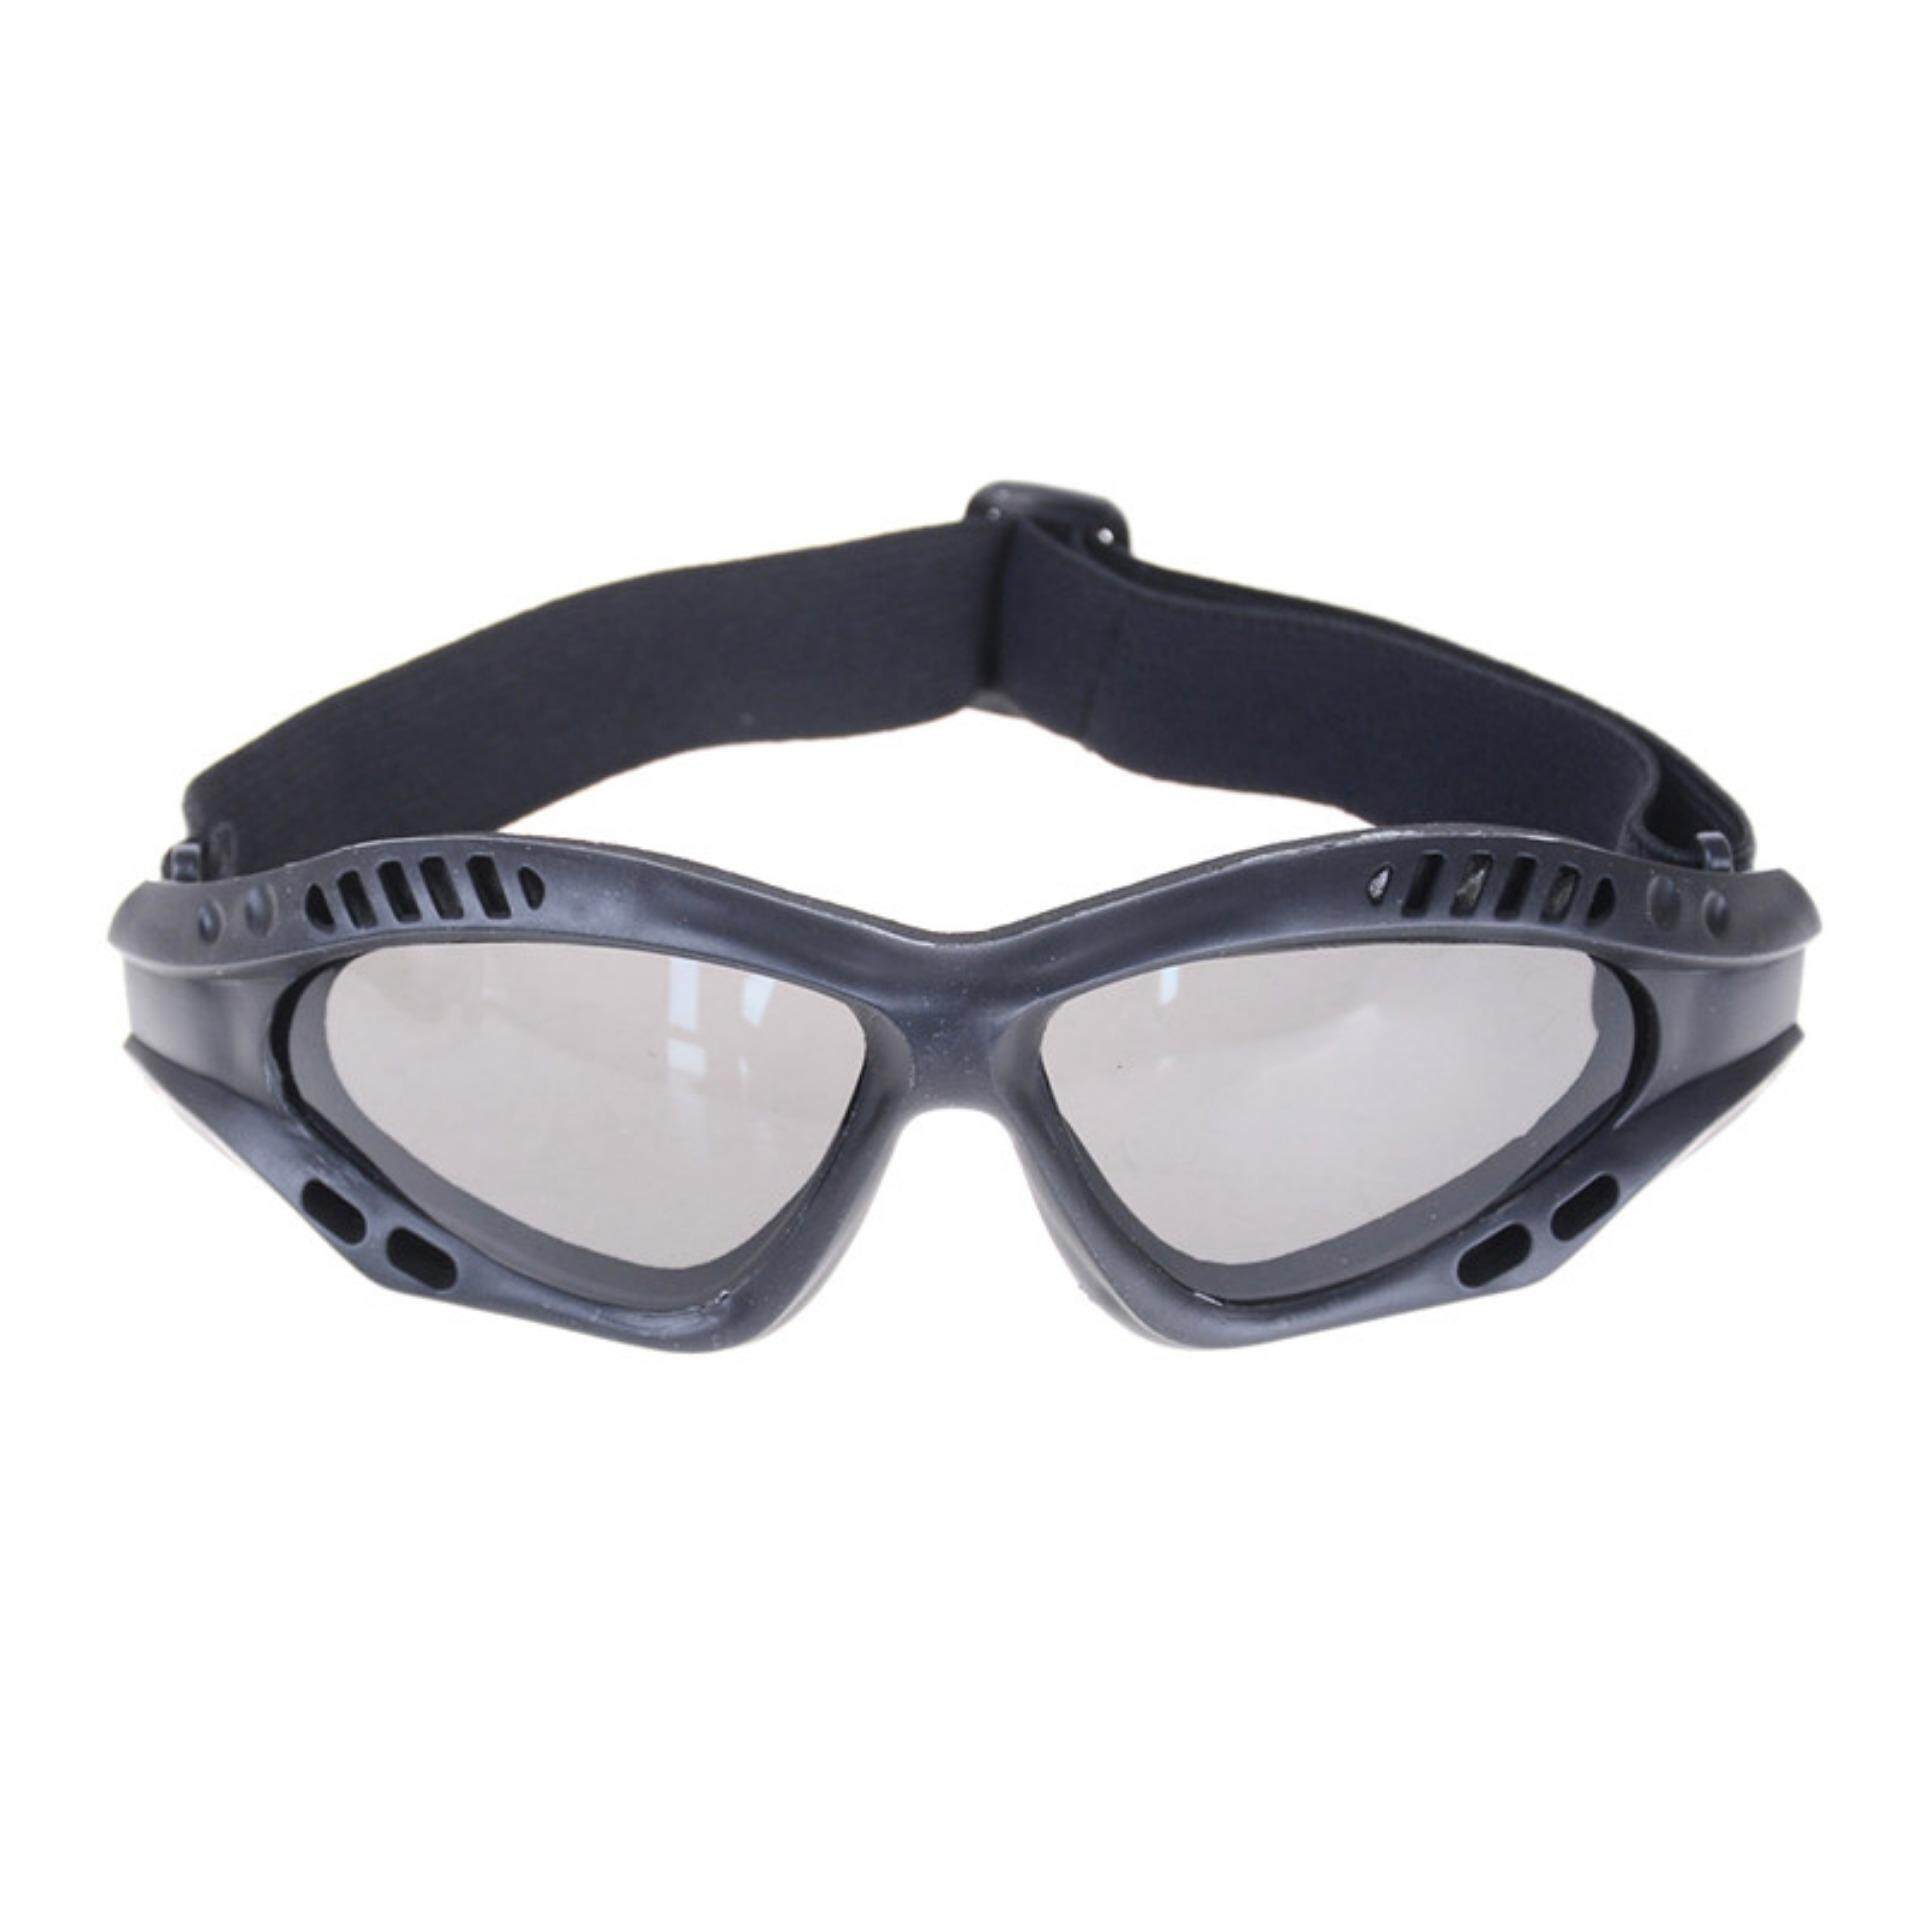 Vegoo Protection Glasses Anti-Shock Windproof Glasses Dust Tactical Safety Glasses